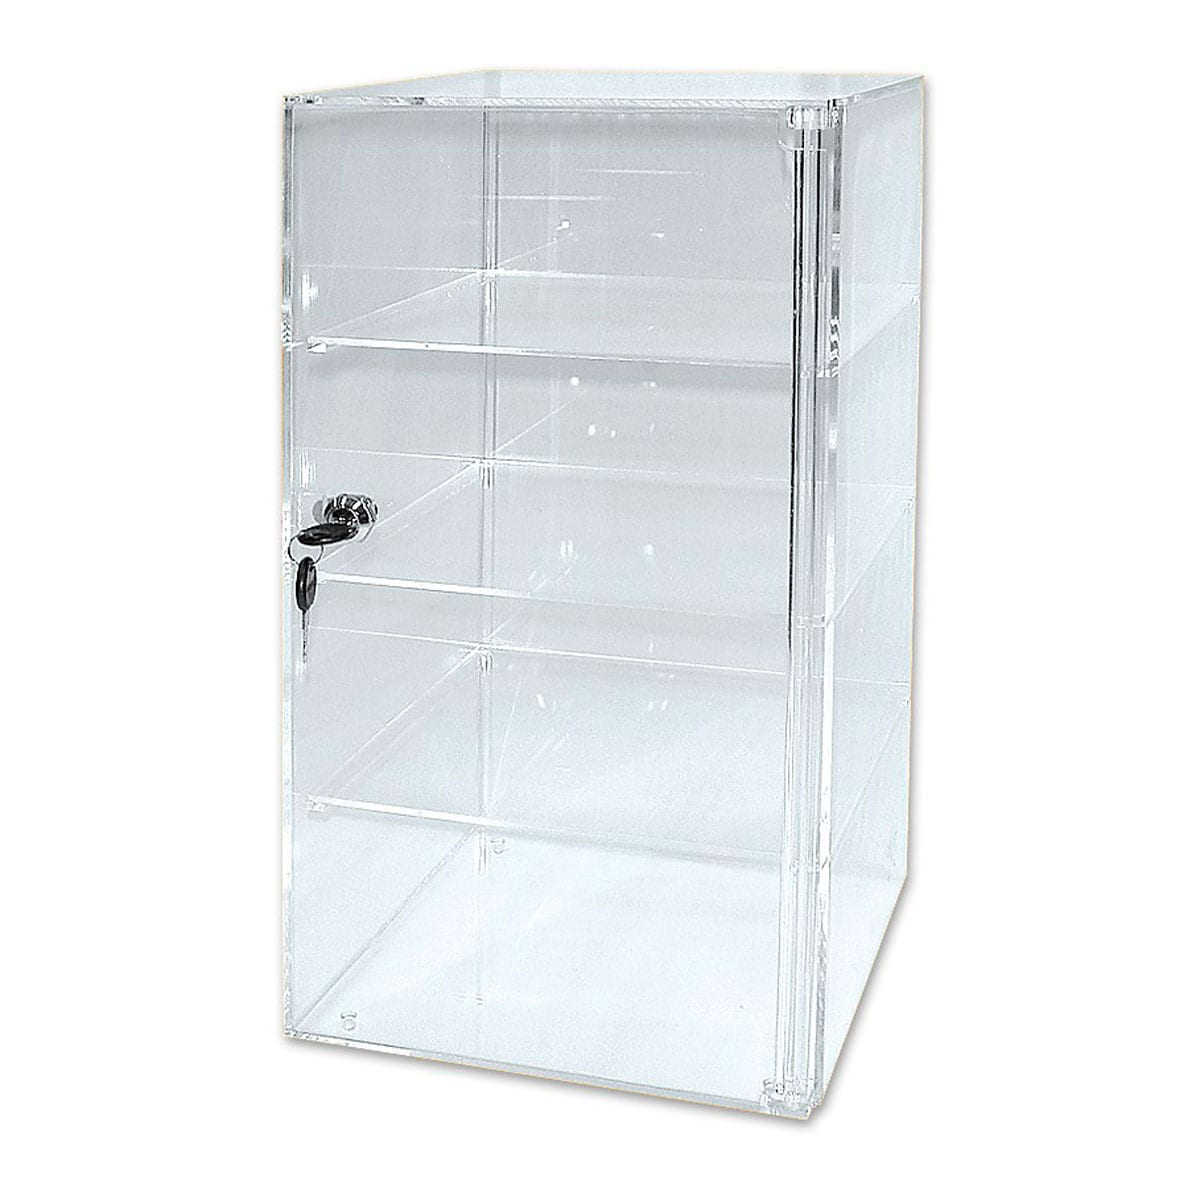 perspex display case with lock